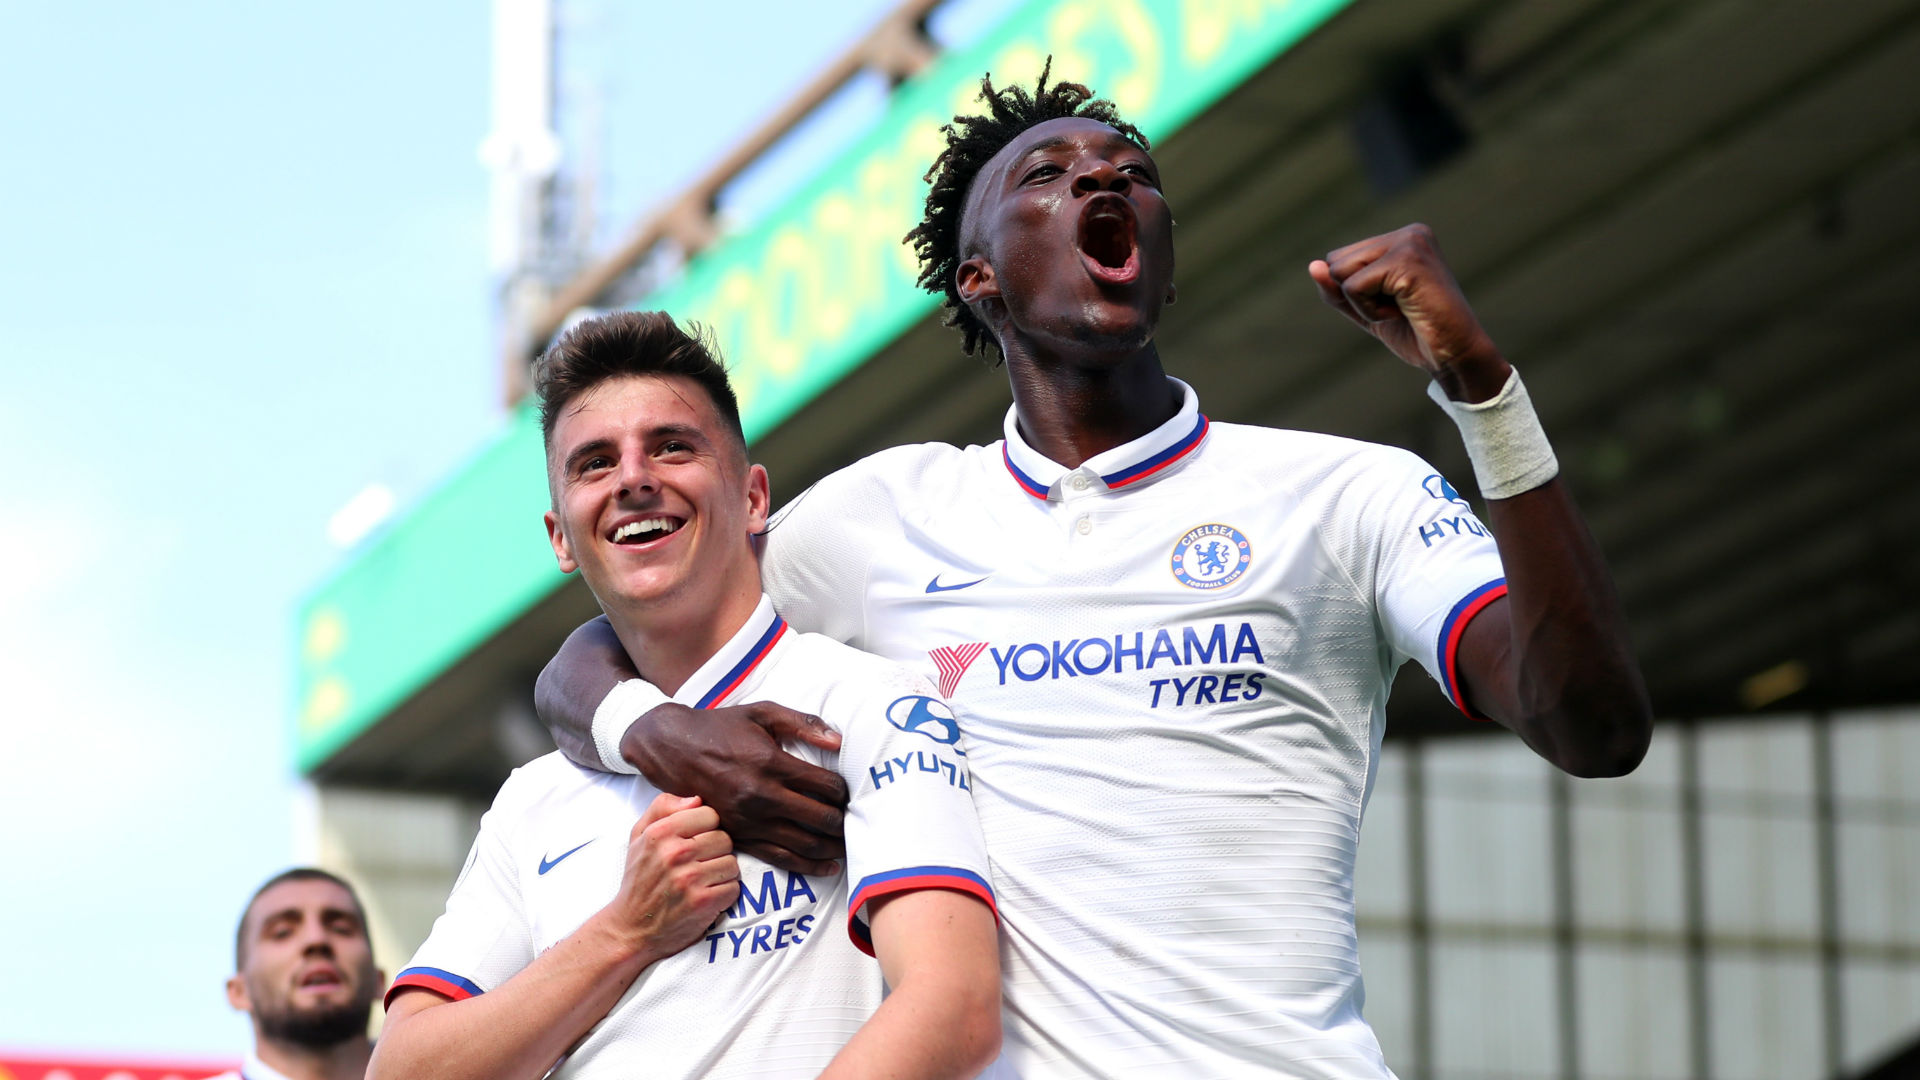 Abraham and Mount are £60million players - Klopp marvels at Chelsea youngsters